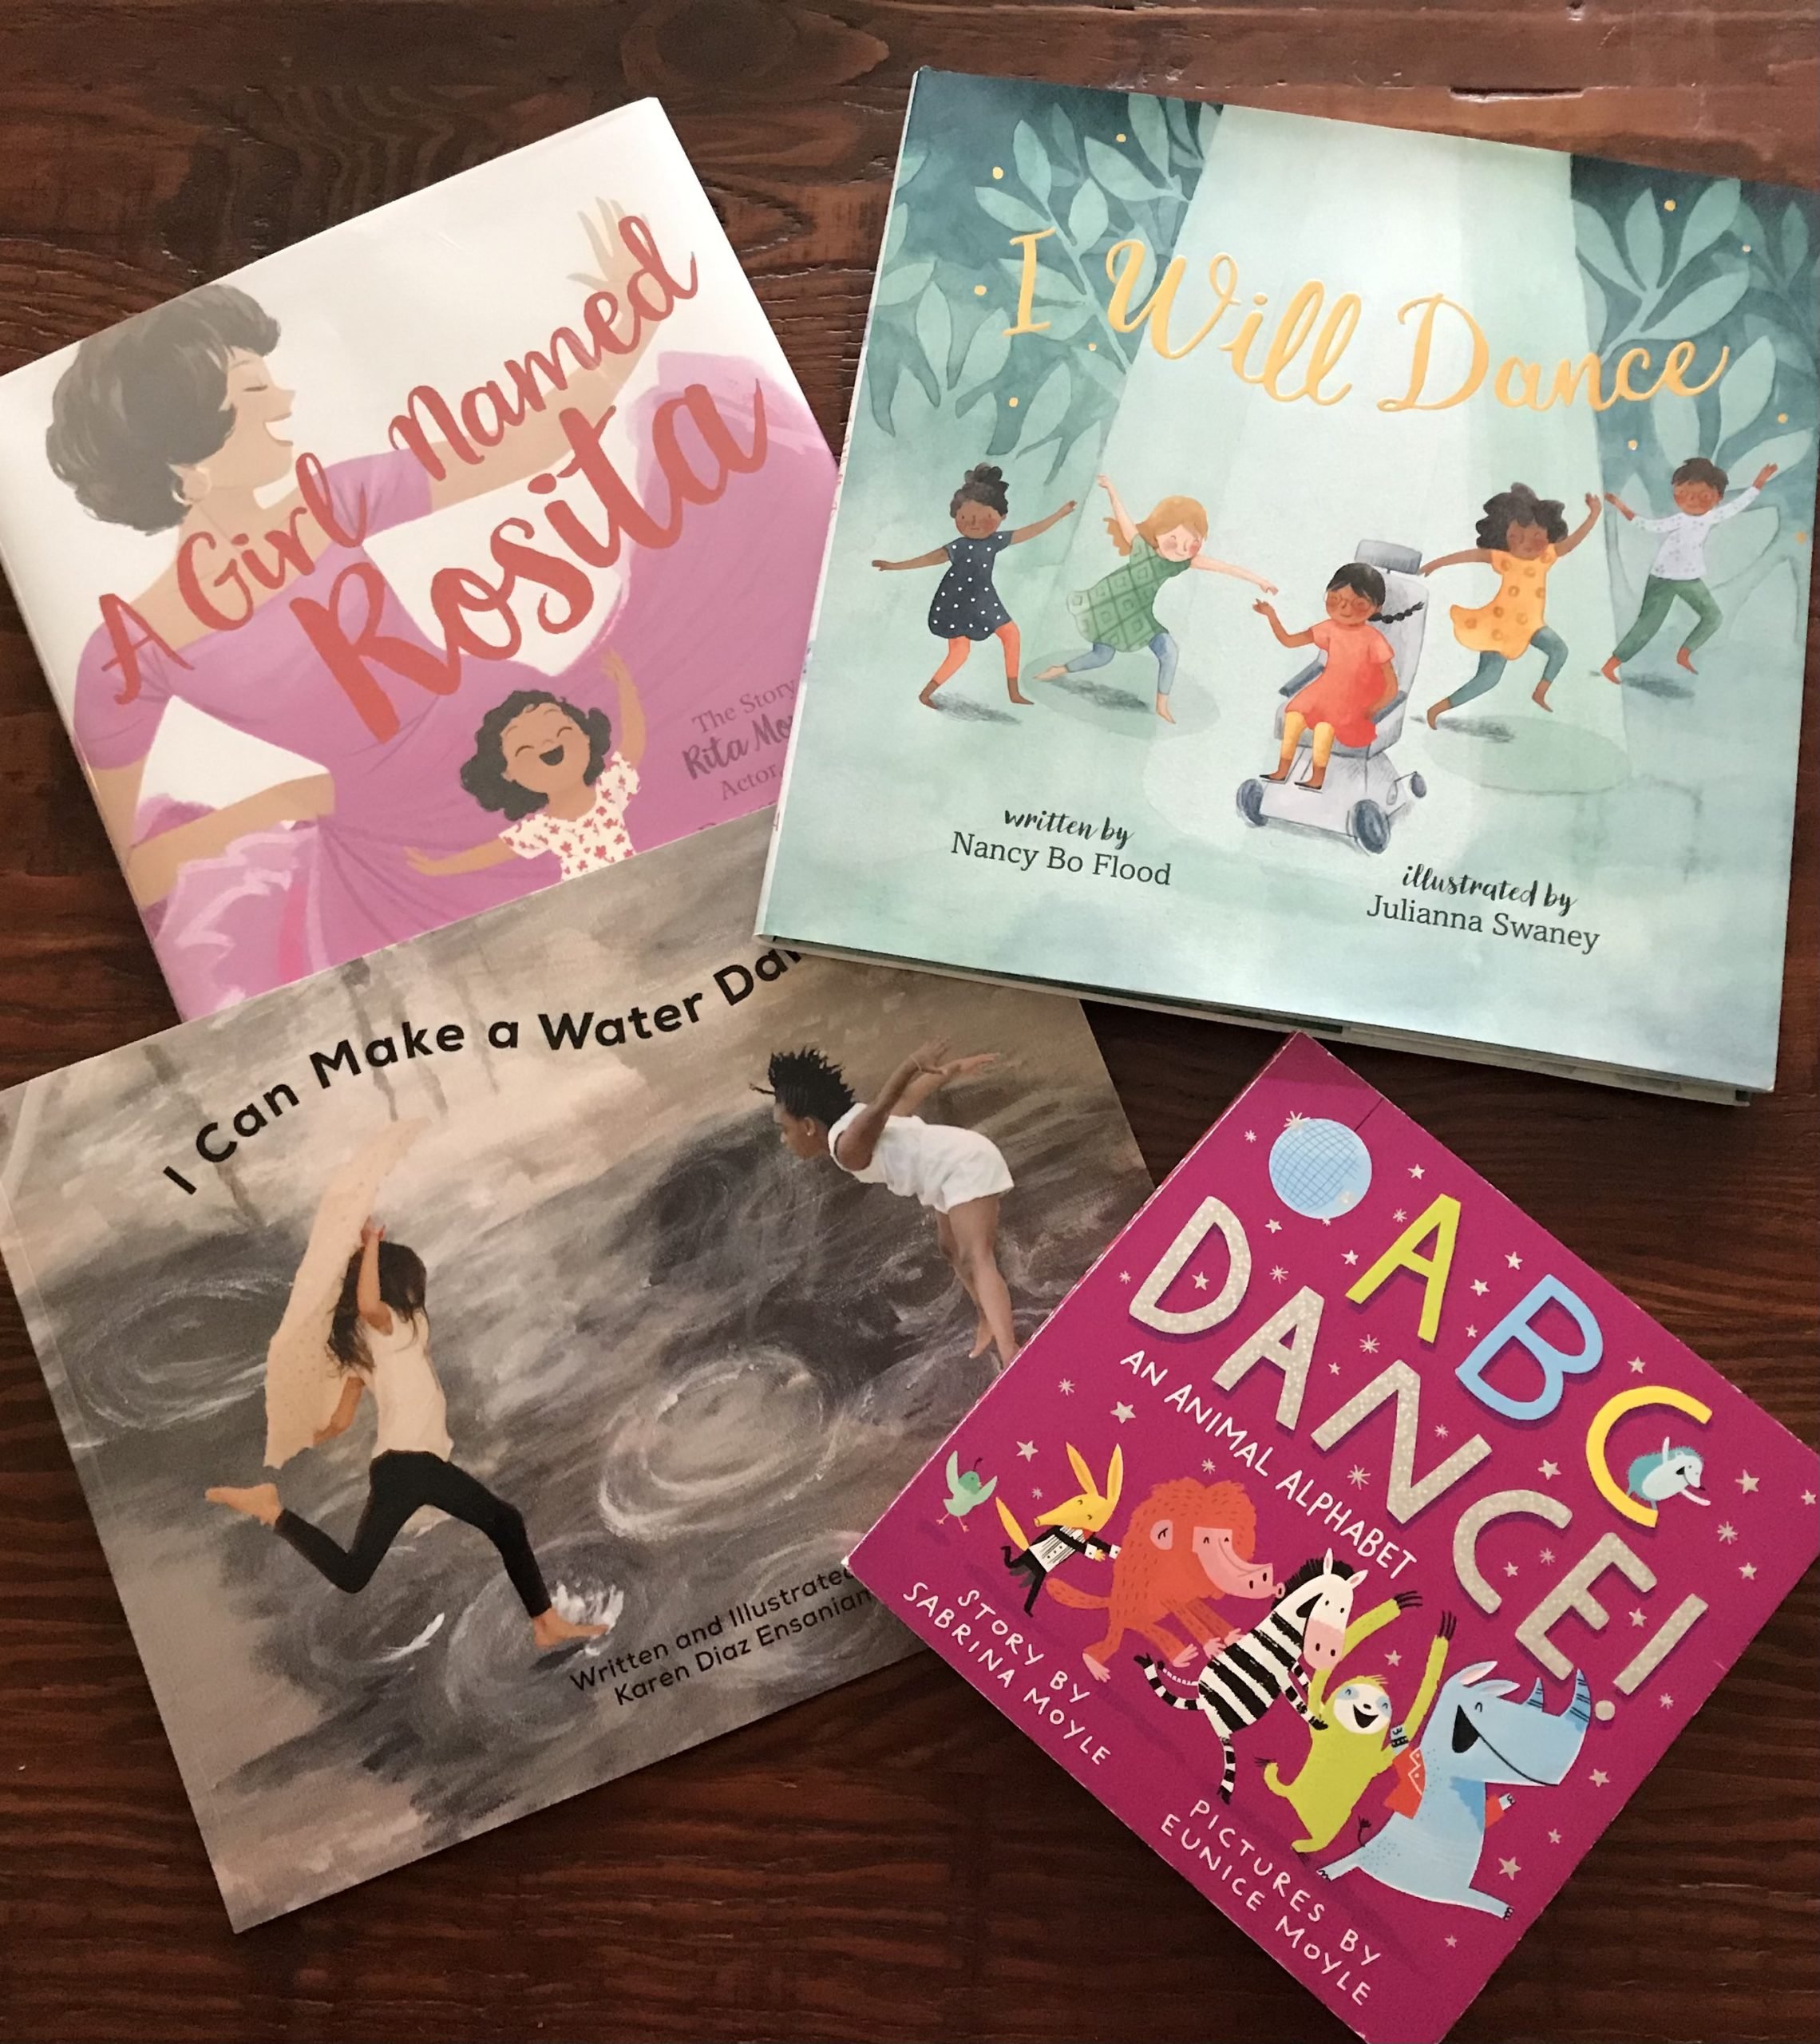 Four books—I Can Make A Water Dance, A Girl Named Rosalita, ABC Dance! and I Will Dance—splayed on a wooden table.